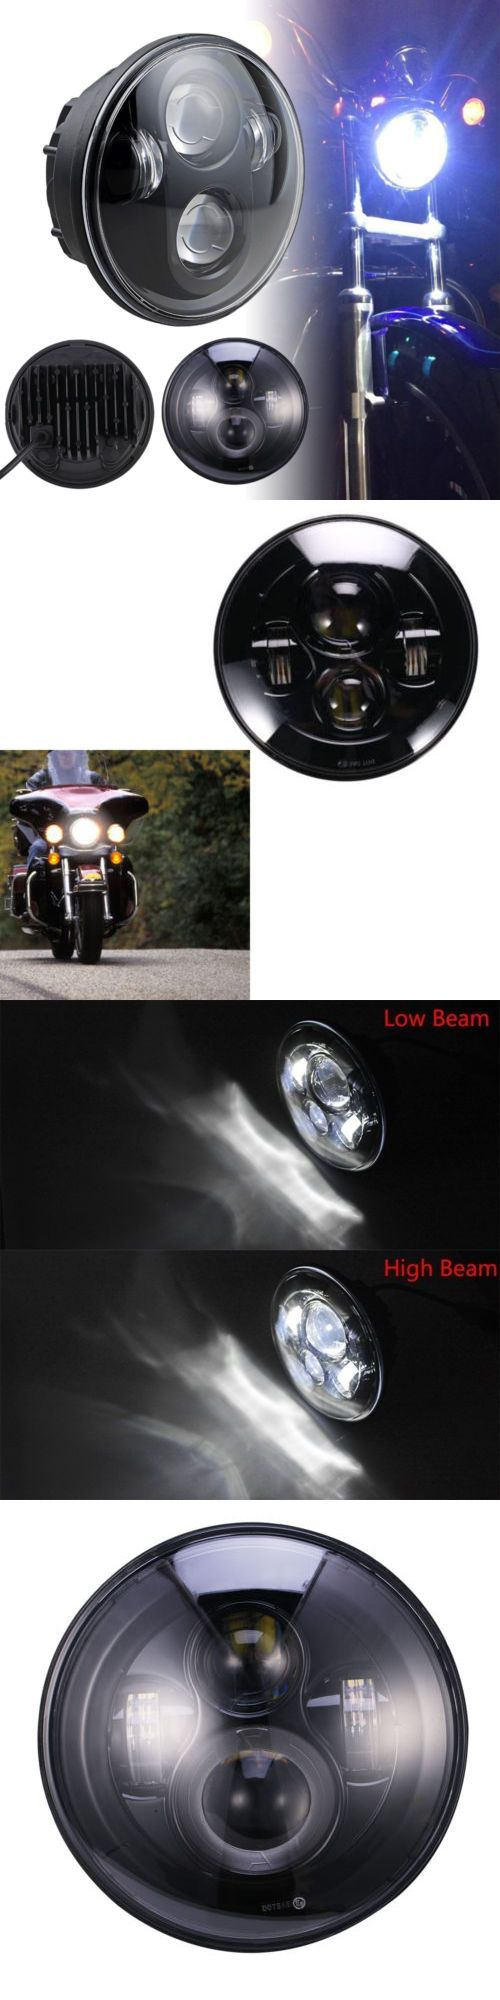 motorcycle parts: 5.75 45W 5 3 4 Motorcycle Led Headlight Daymaker Projector Bulb For Harley -> BUY IT NOW ONLY: $39.89 on eBay!